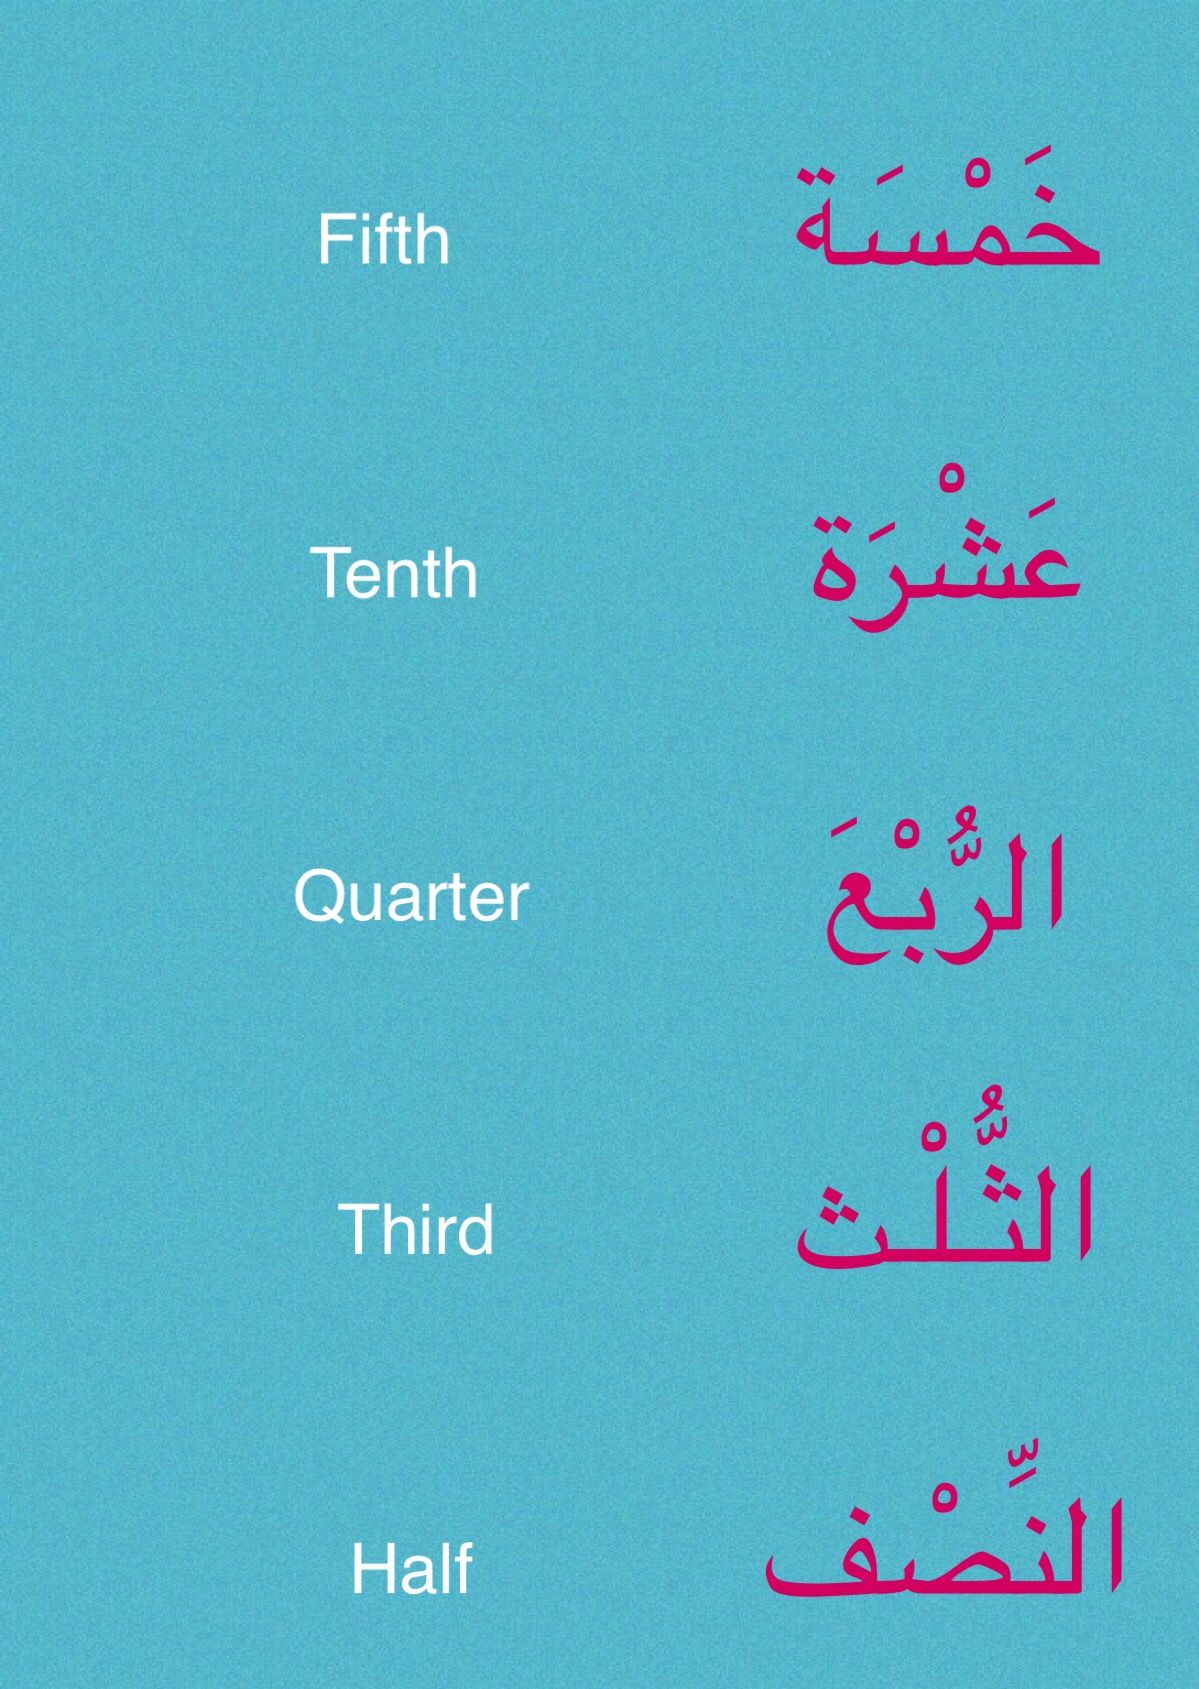 Pin by امل عبدالله on English Learn english, Arabic